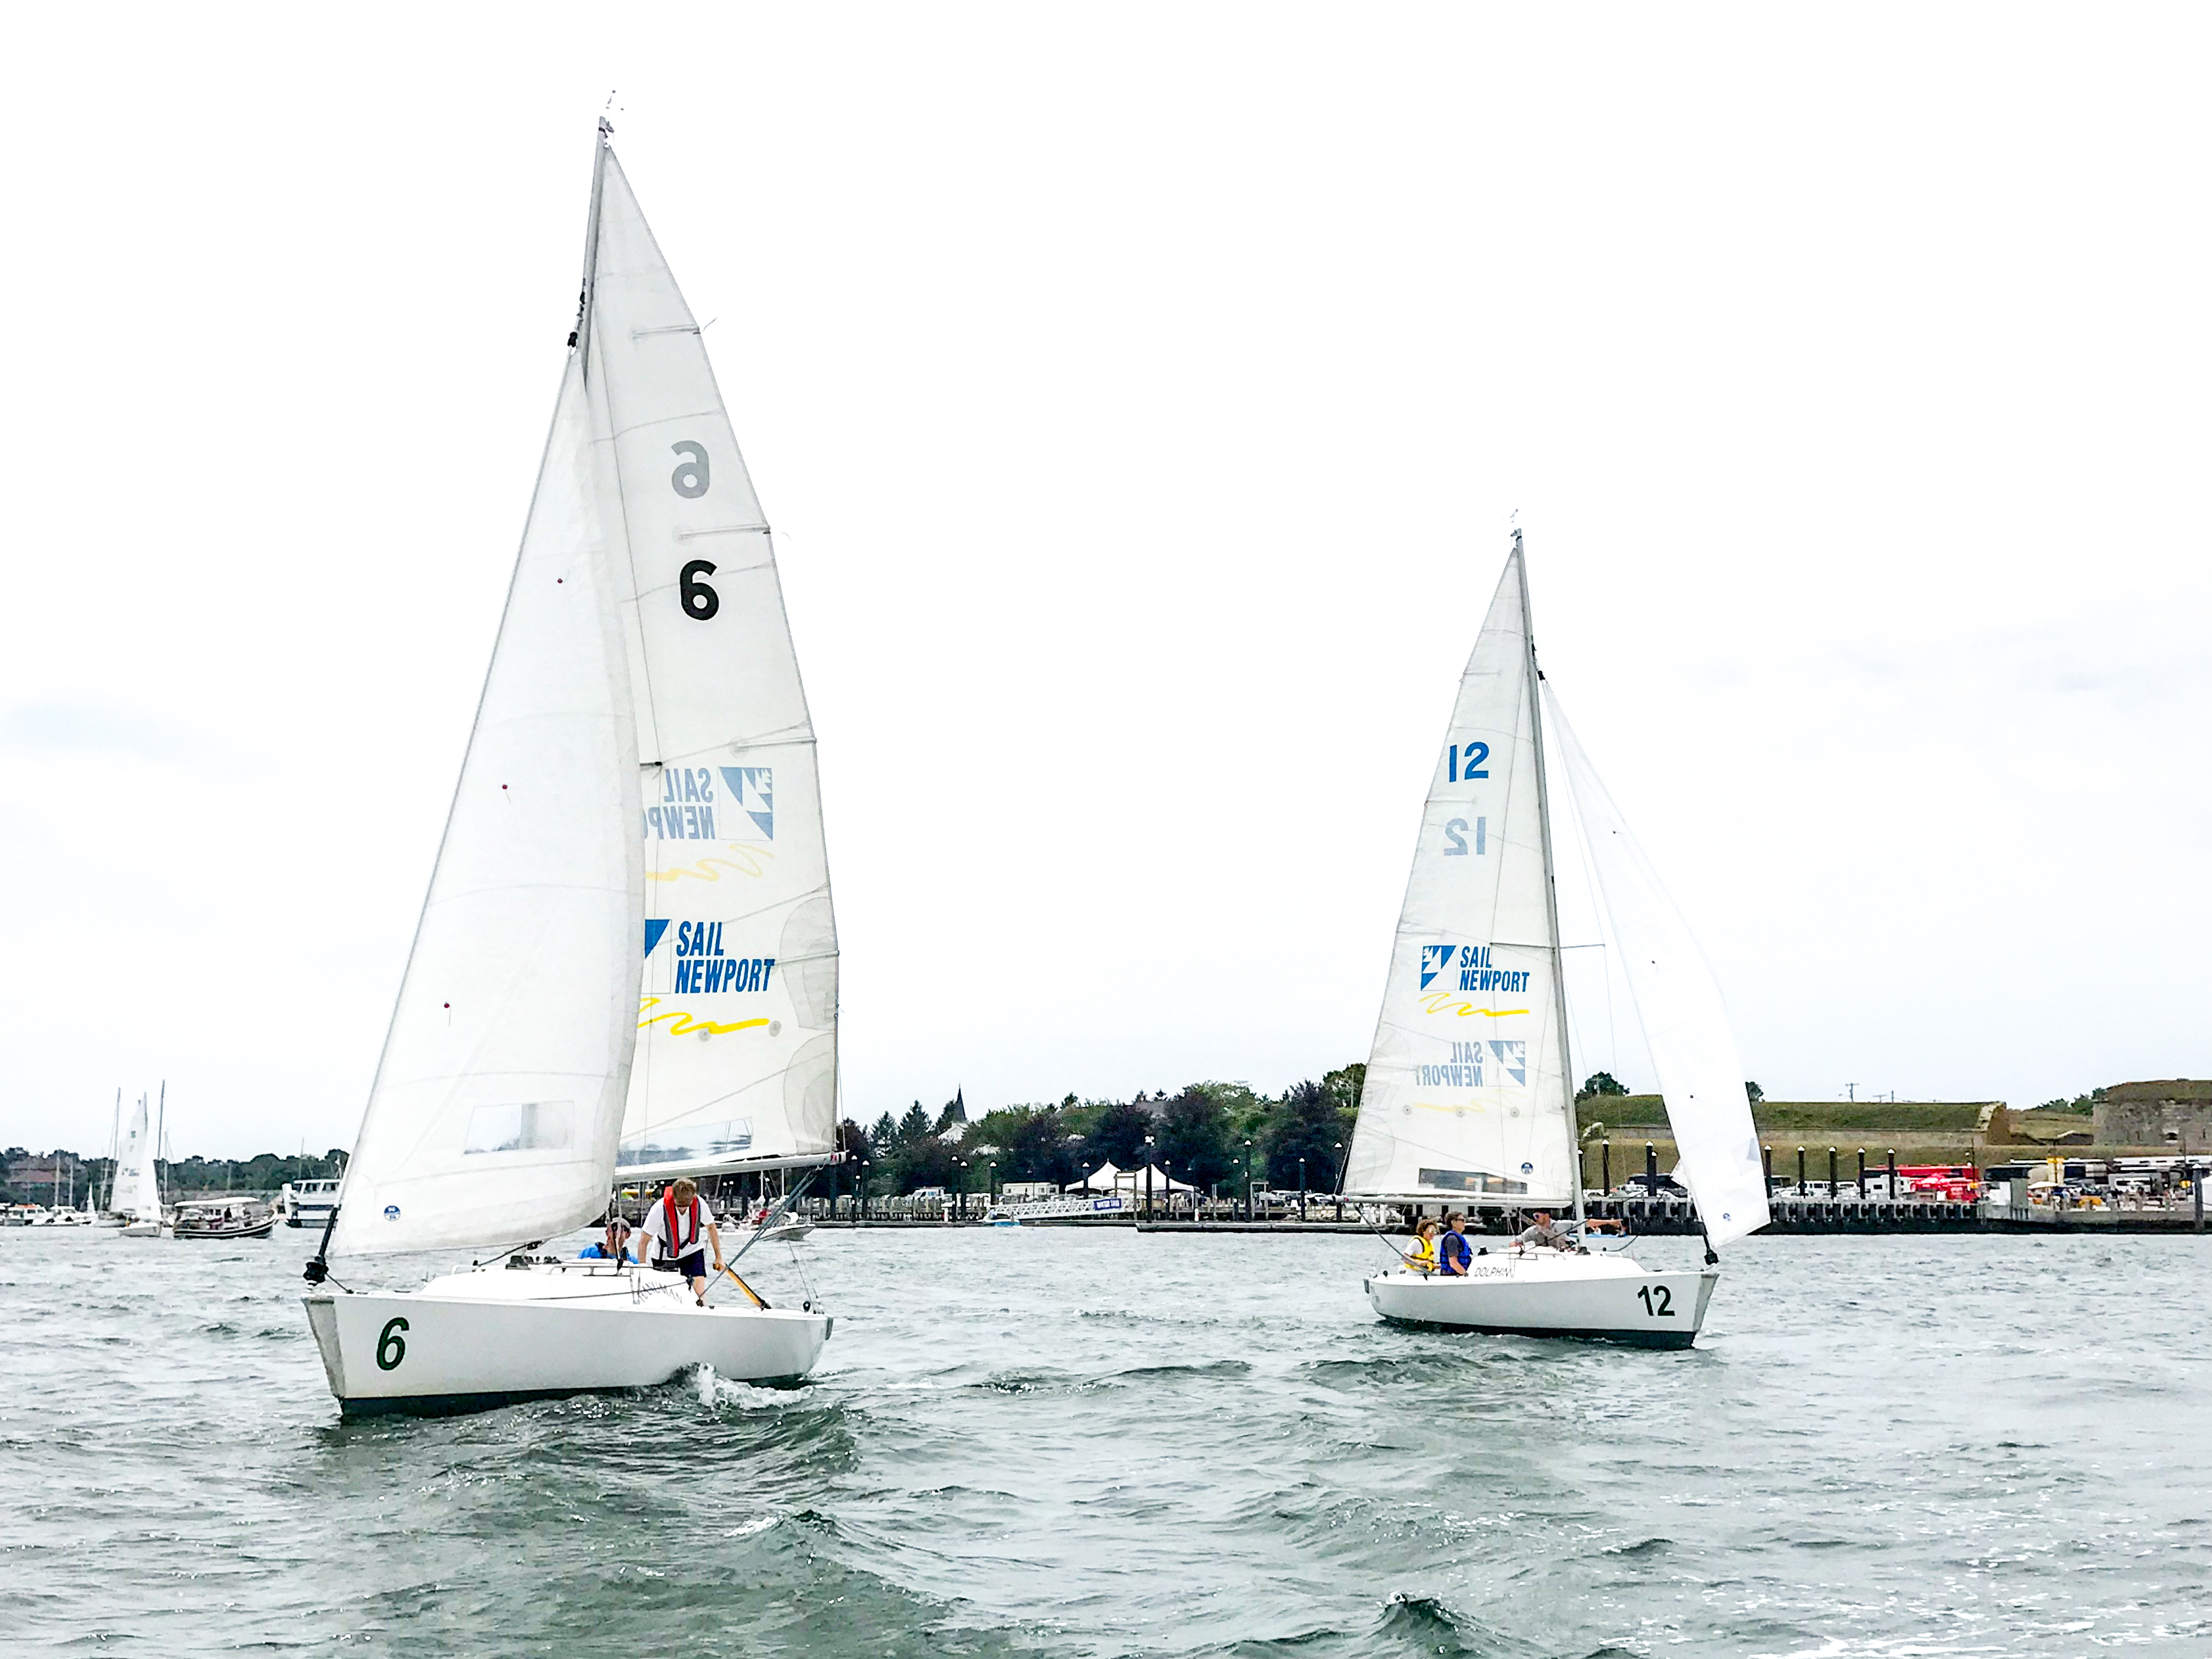 Celebrate Community Sailing with Sail Newport and New York Yacht Club American Magic on August 22